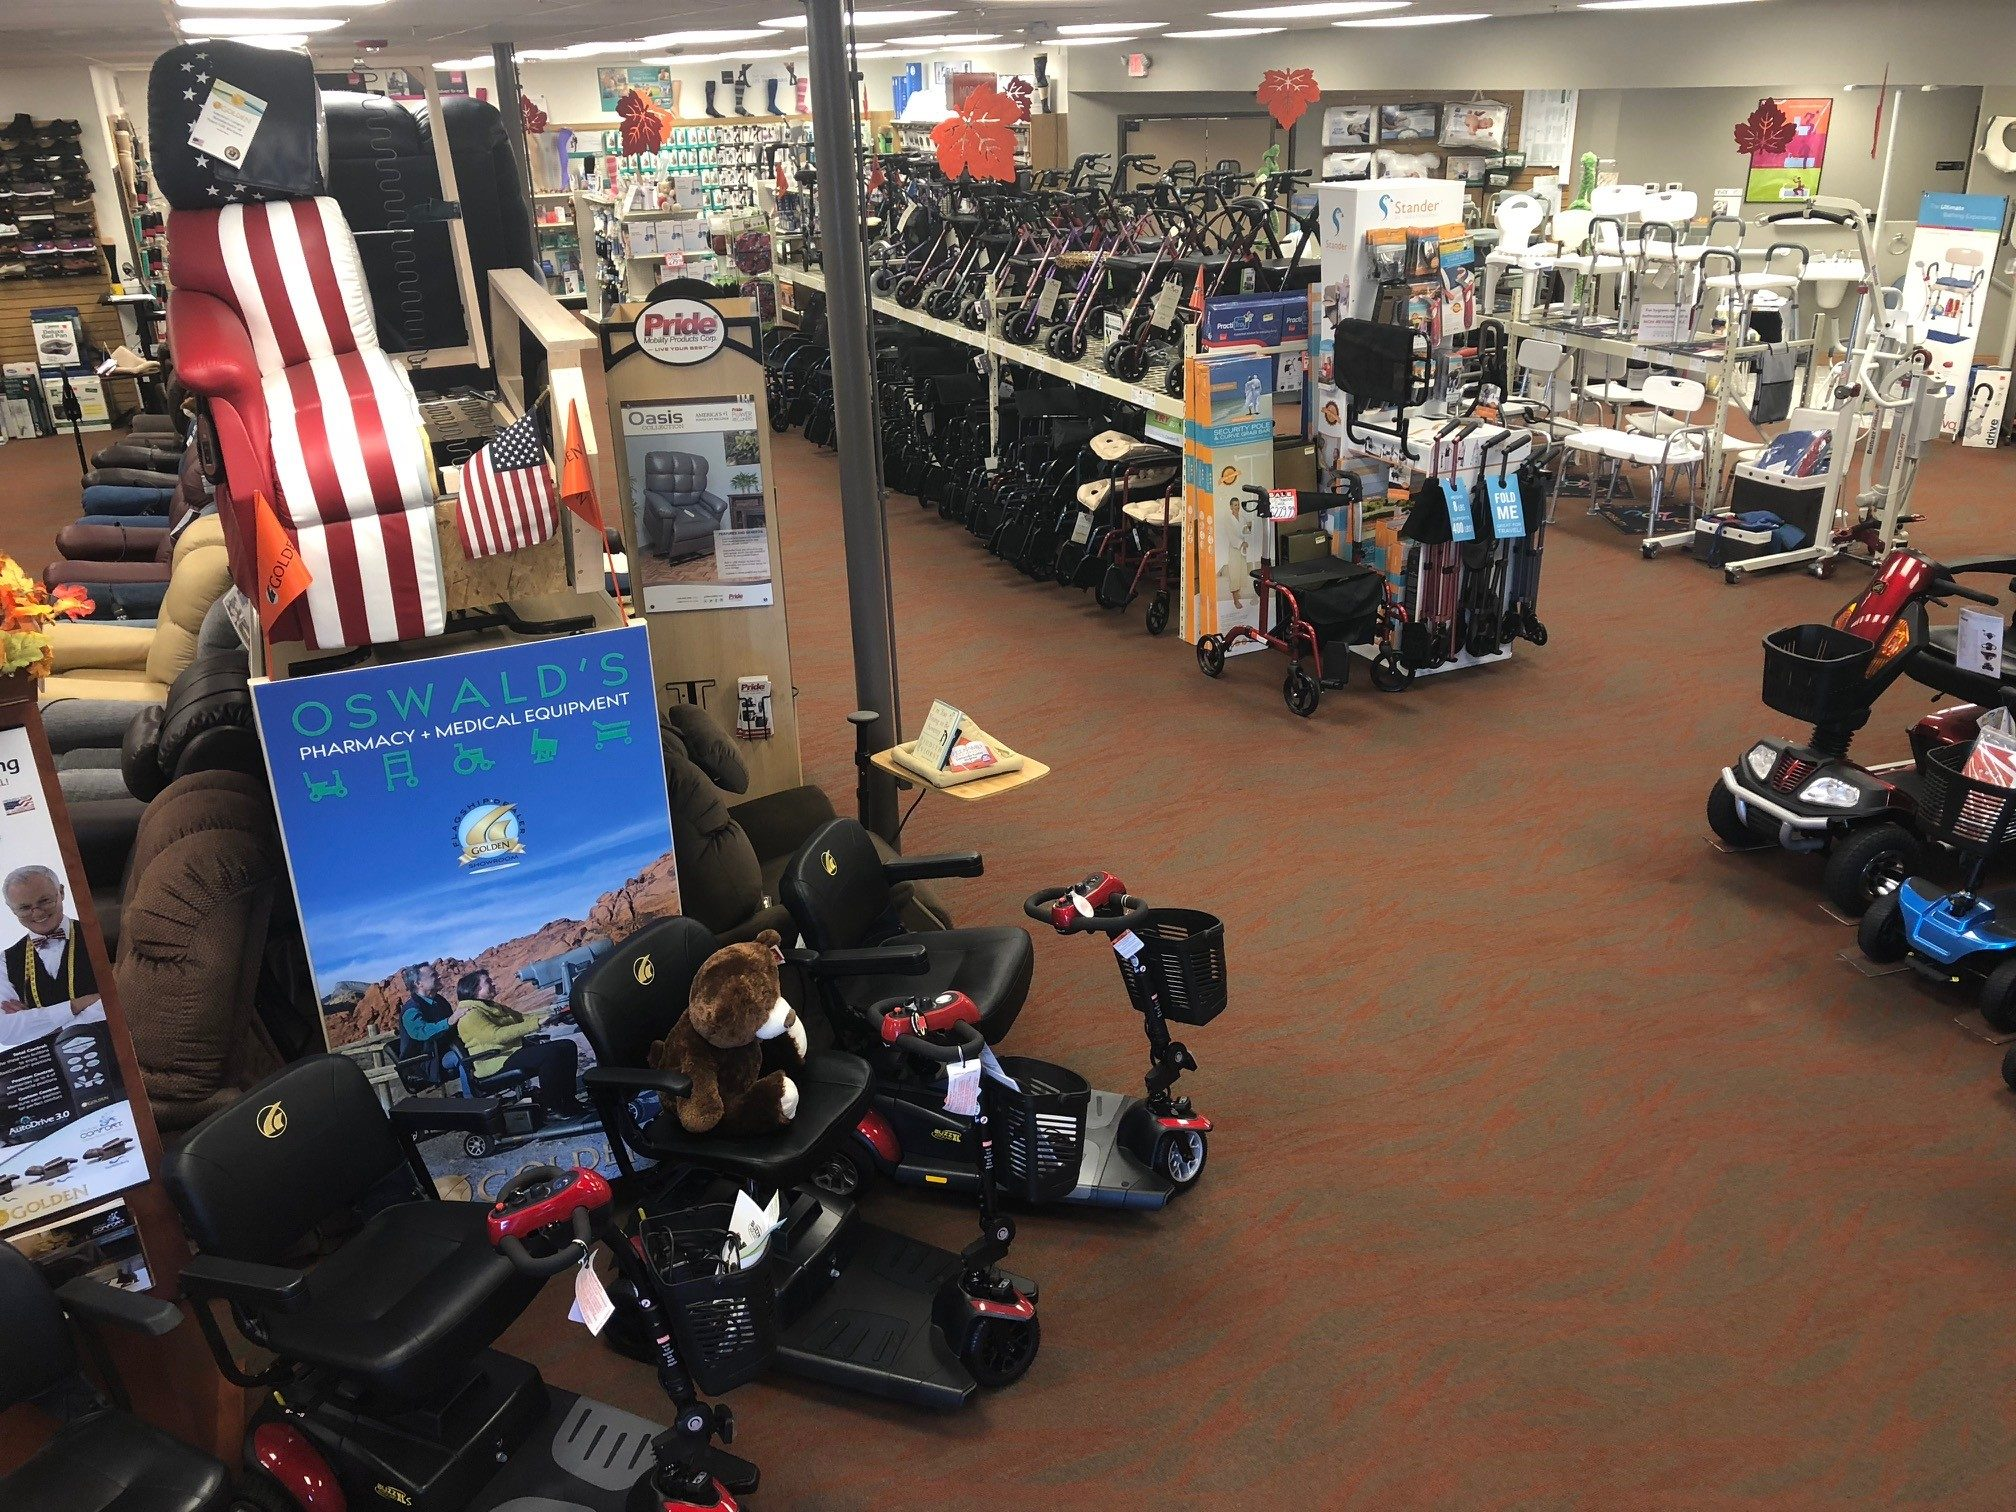 What Is A Medical Equipment Showroom? | Oswald's Pharmacy